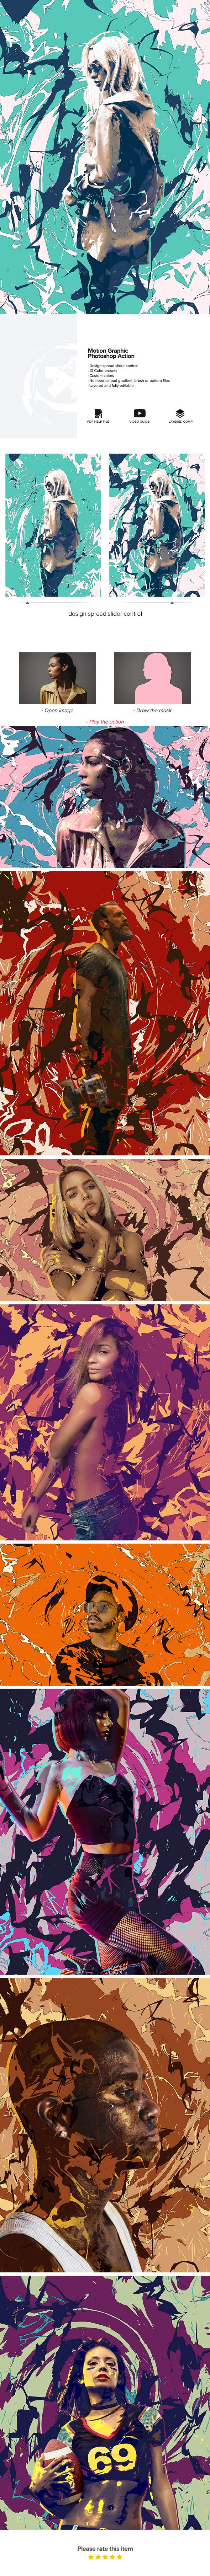 Motion Graphic Photoshop Action PHOTOSHOP CONFIGURATION:      Use Photoshop english version     RGB color mode 8 bits     Layered and fully editable           FEATURES:      Design spread slider control     10 color presets     Custom colors     Completely procedural (no need to load gradient, brush or pattern files)     Layered and fully editable